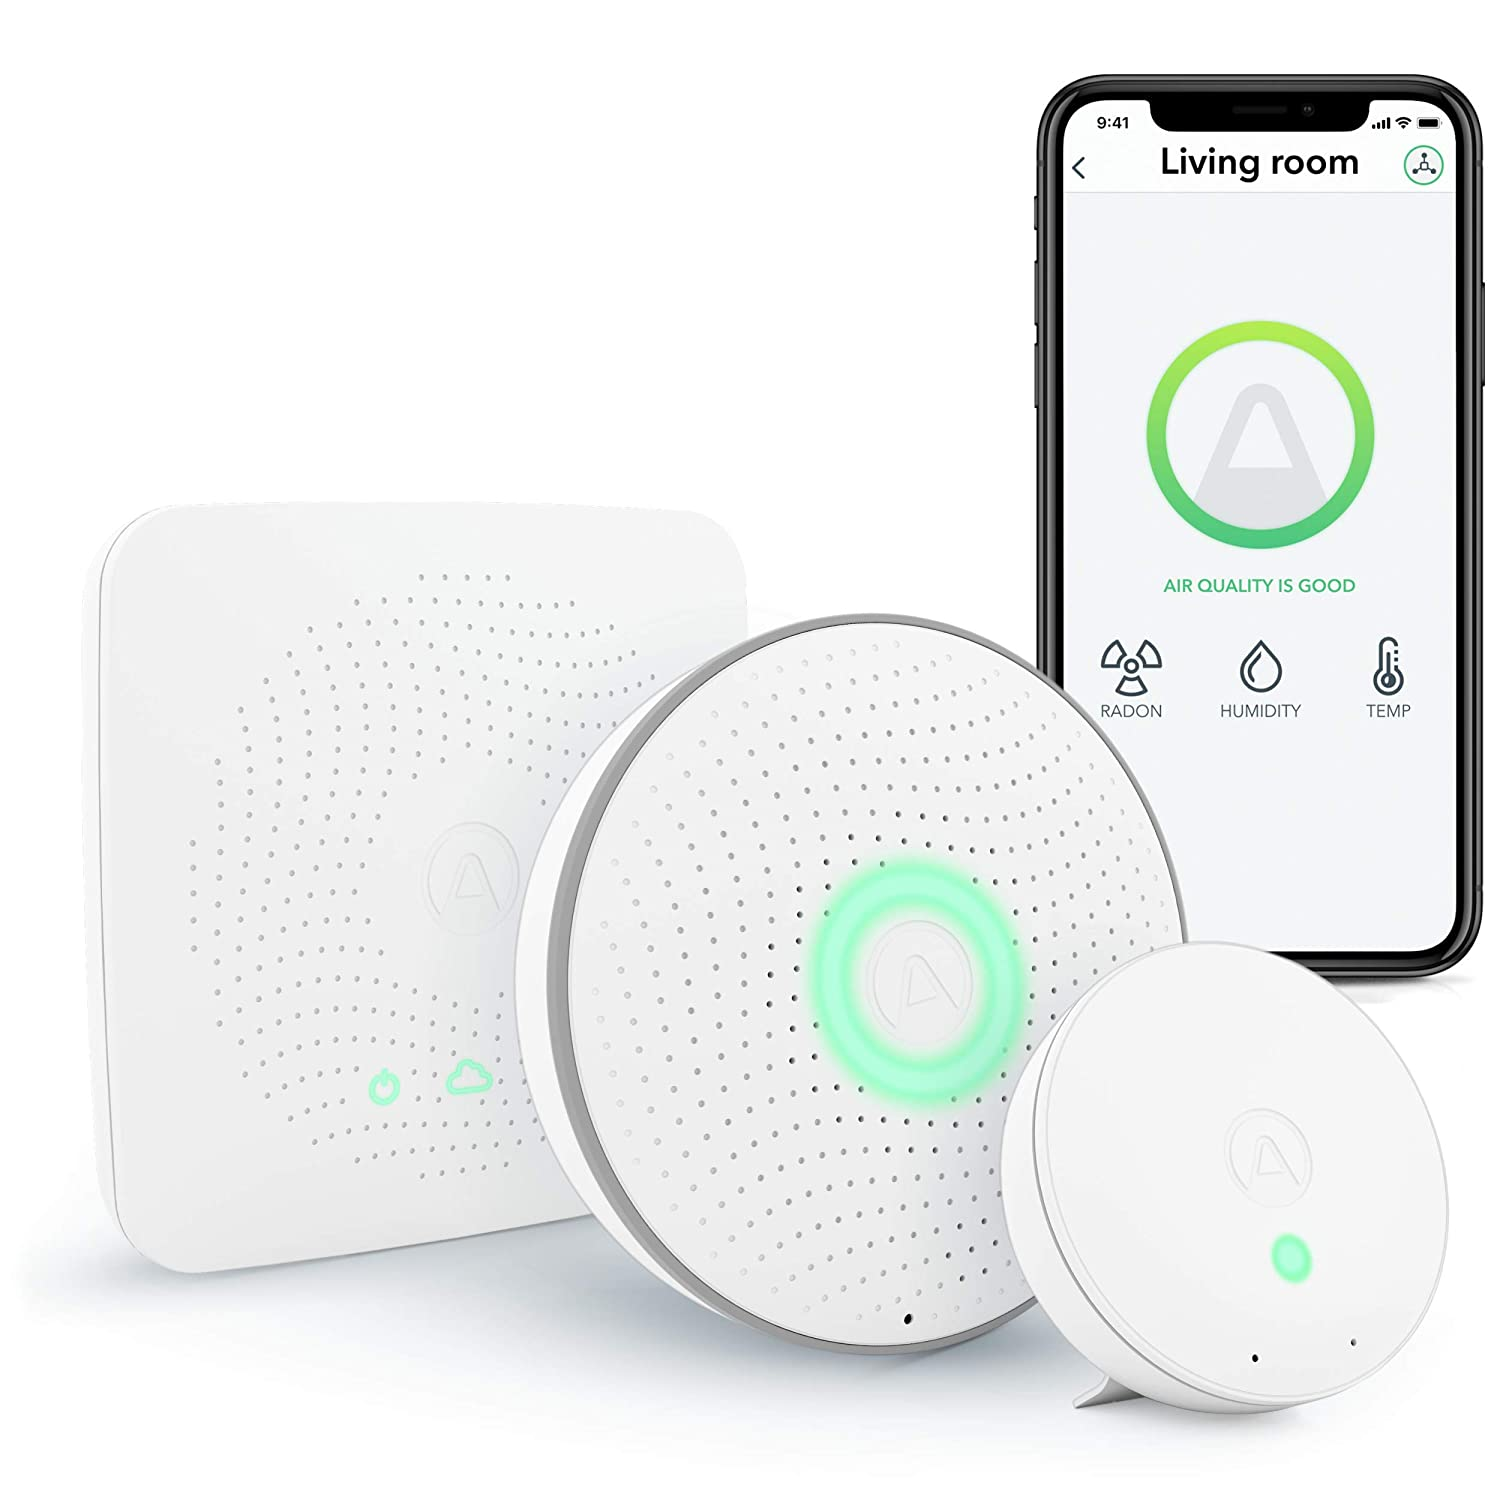 Airthings House Kit, Radon and Indoor Air Quality Monitoring System, Multi-Room